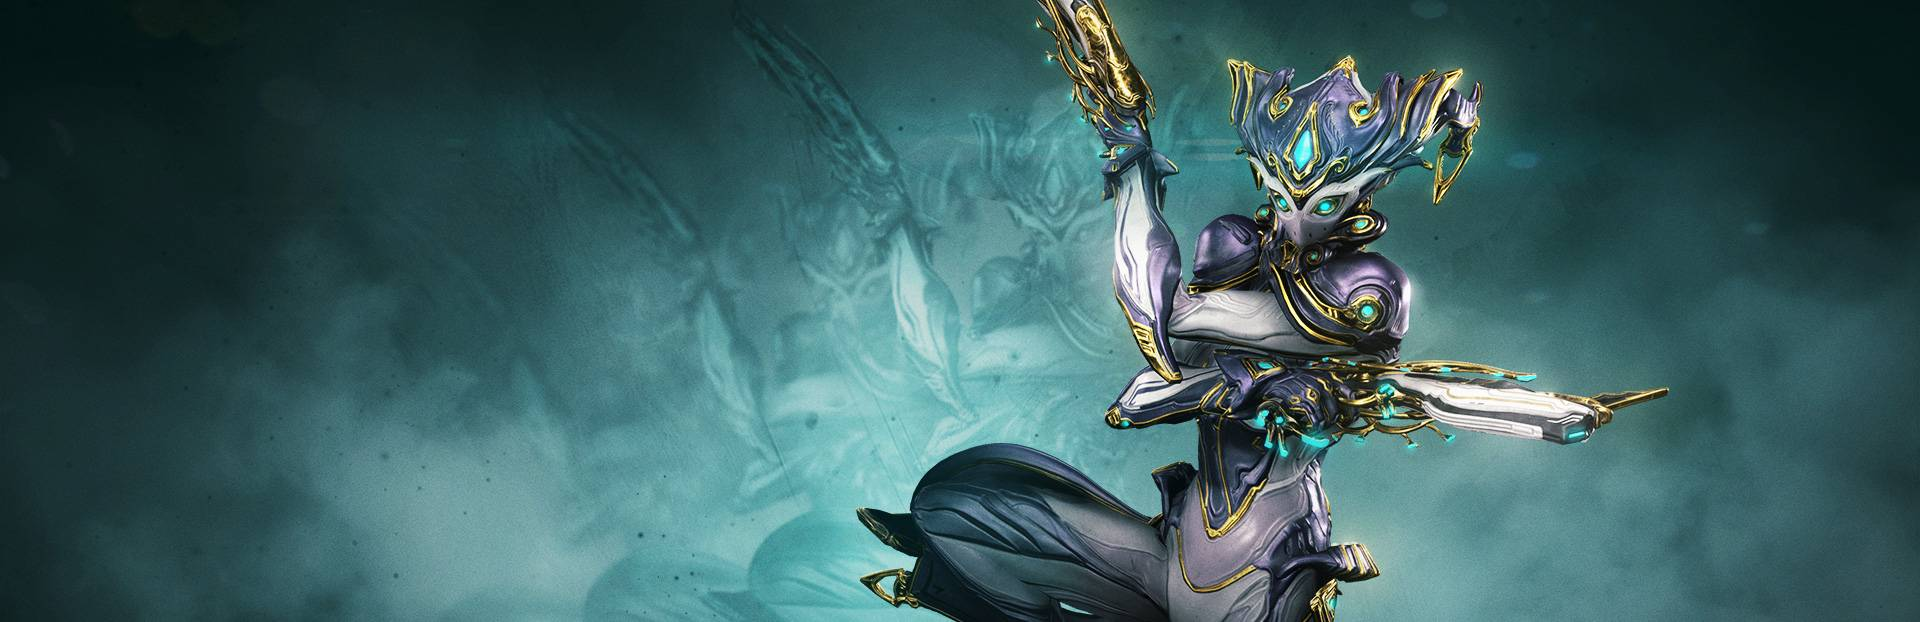 Mirage Prime Access Ends March 20th! - Announcements